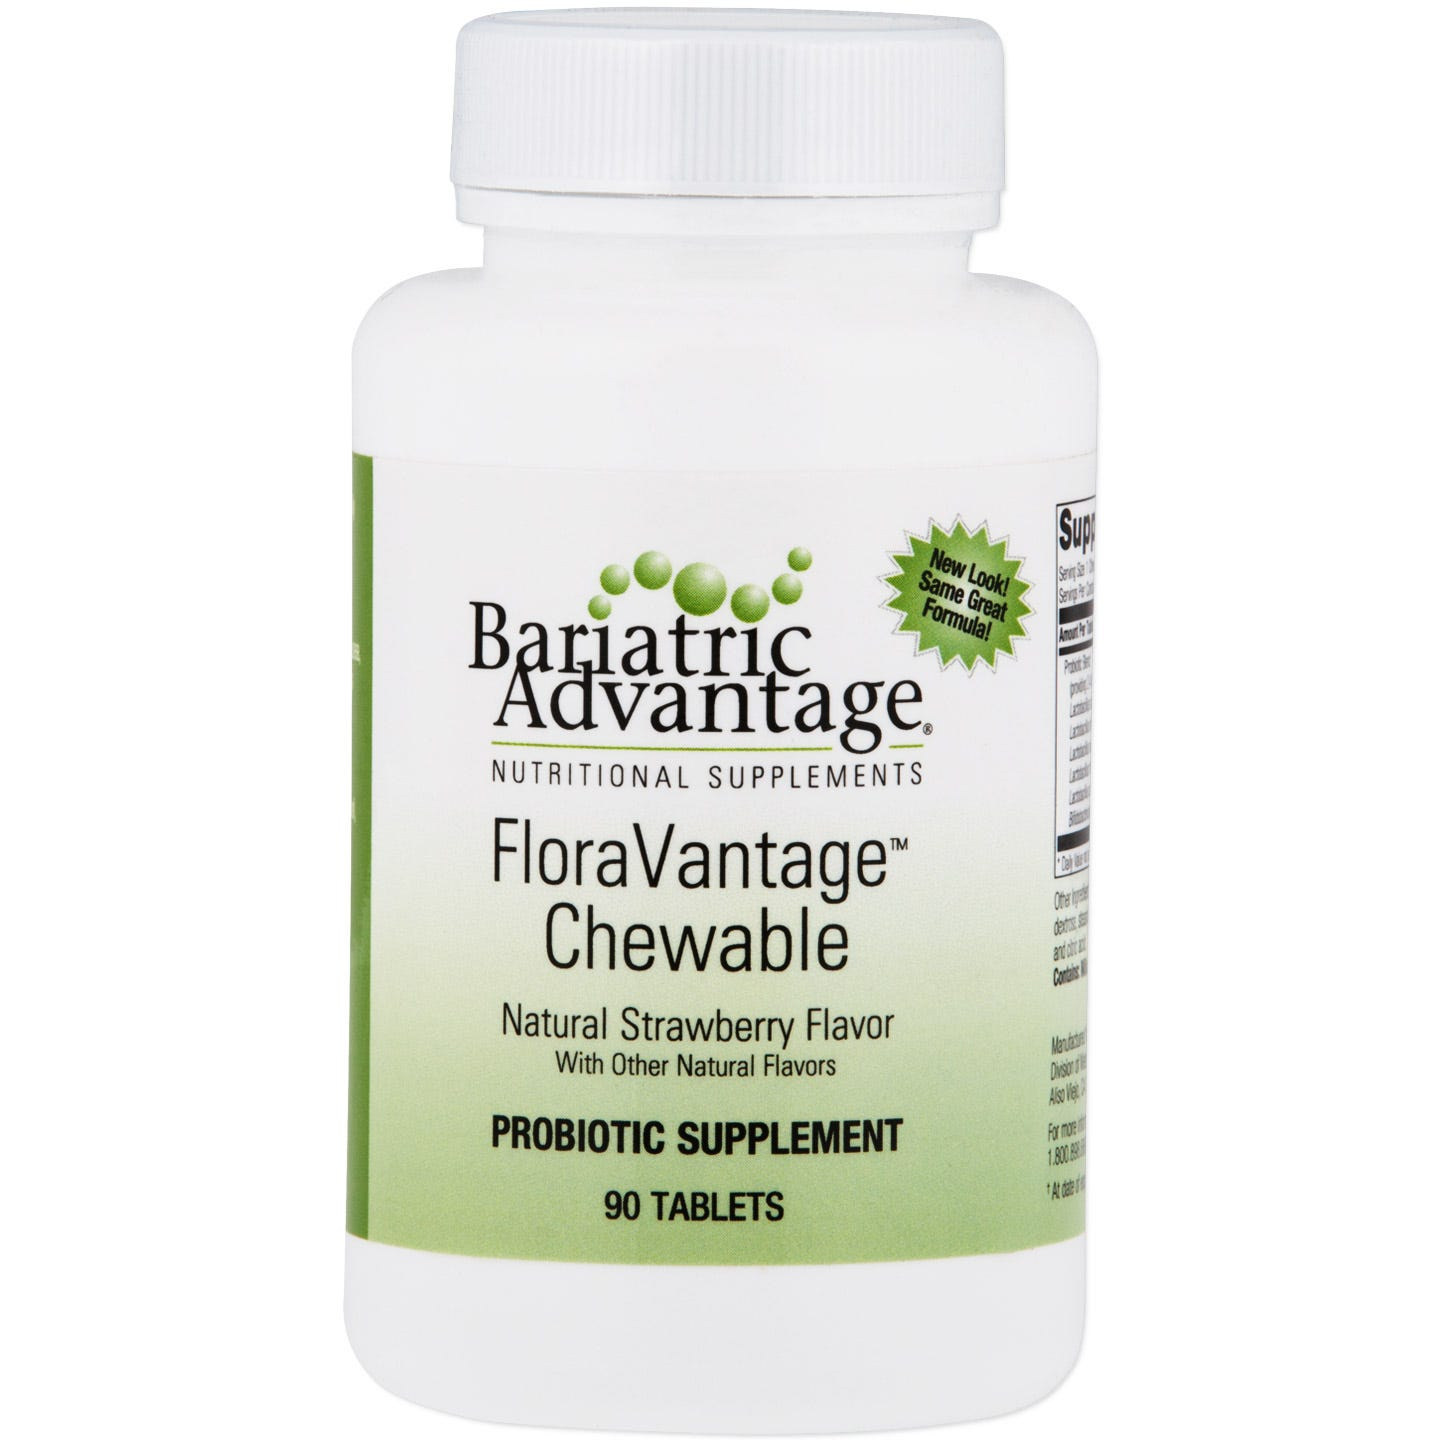 FloraVantage 150mg Natural Strawberry (90 ct) - Bariatric Advantage - Rapid Diet Weight Loss Products Shop